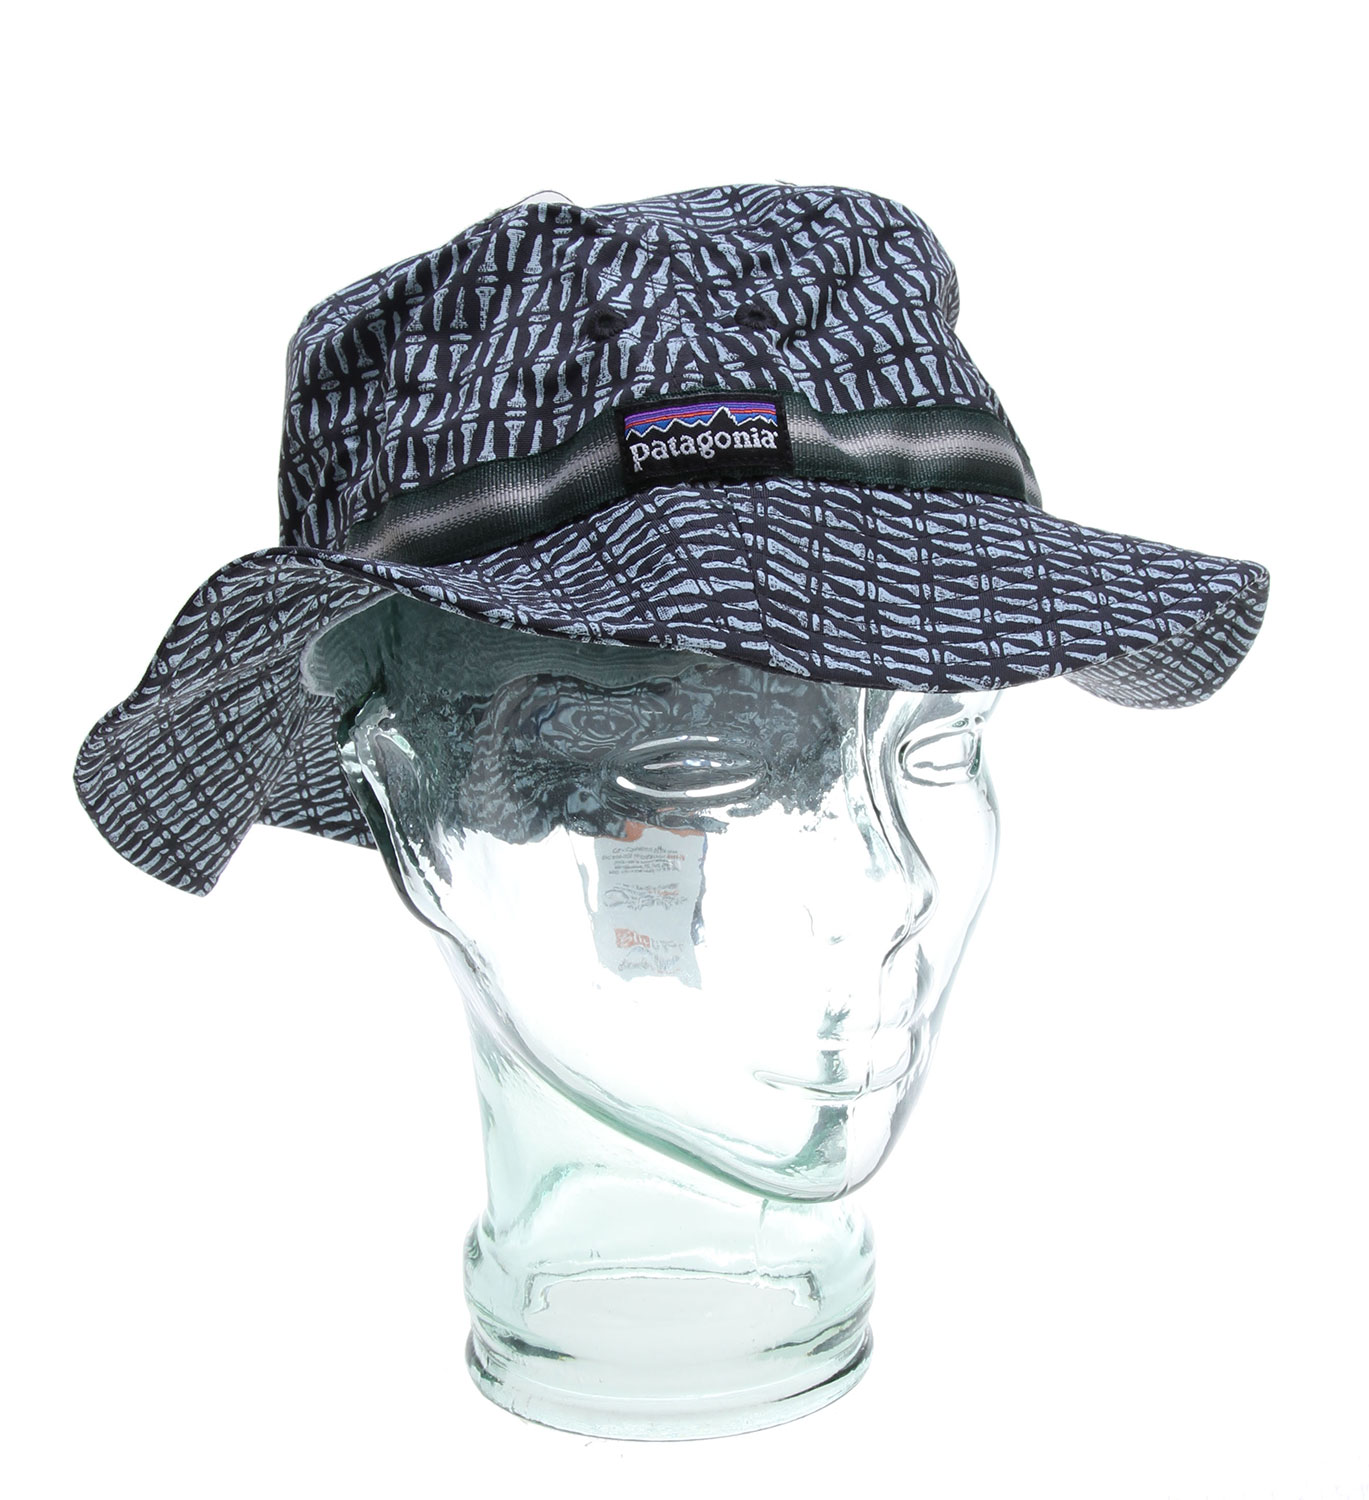 With its full brim, the lightweight, fast-drying Bucket Hat provides 360-degree and 50+ UPF sun protection. FABRIC: 4.2-oz 100% nylon with a DWR (durable water repellent) finish and 50+ UPF sun protectionKey Features of the Patagonia Bucket Hat Nailed/Black: Regular fit Lightweight, fast-drying, easy-care fabric with 50+ UPF sun protection Nylon treated with a DWR finish to shed rain and ocean spray Crushable 360-degree brim provides complete sun protection Rolls into its own inside pocket - $25.95